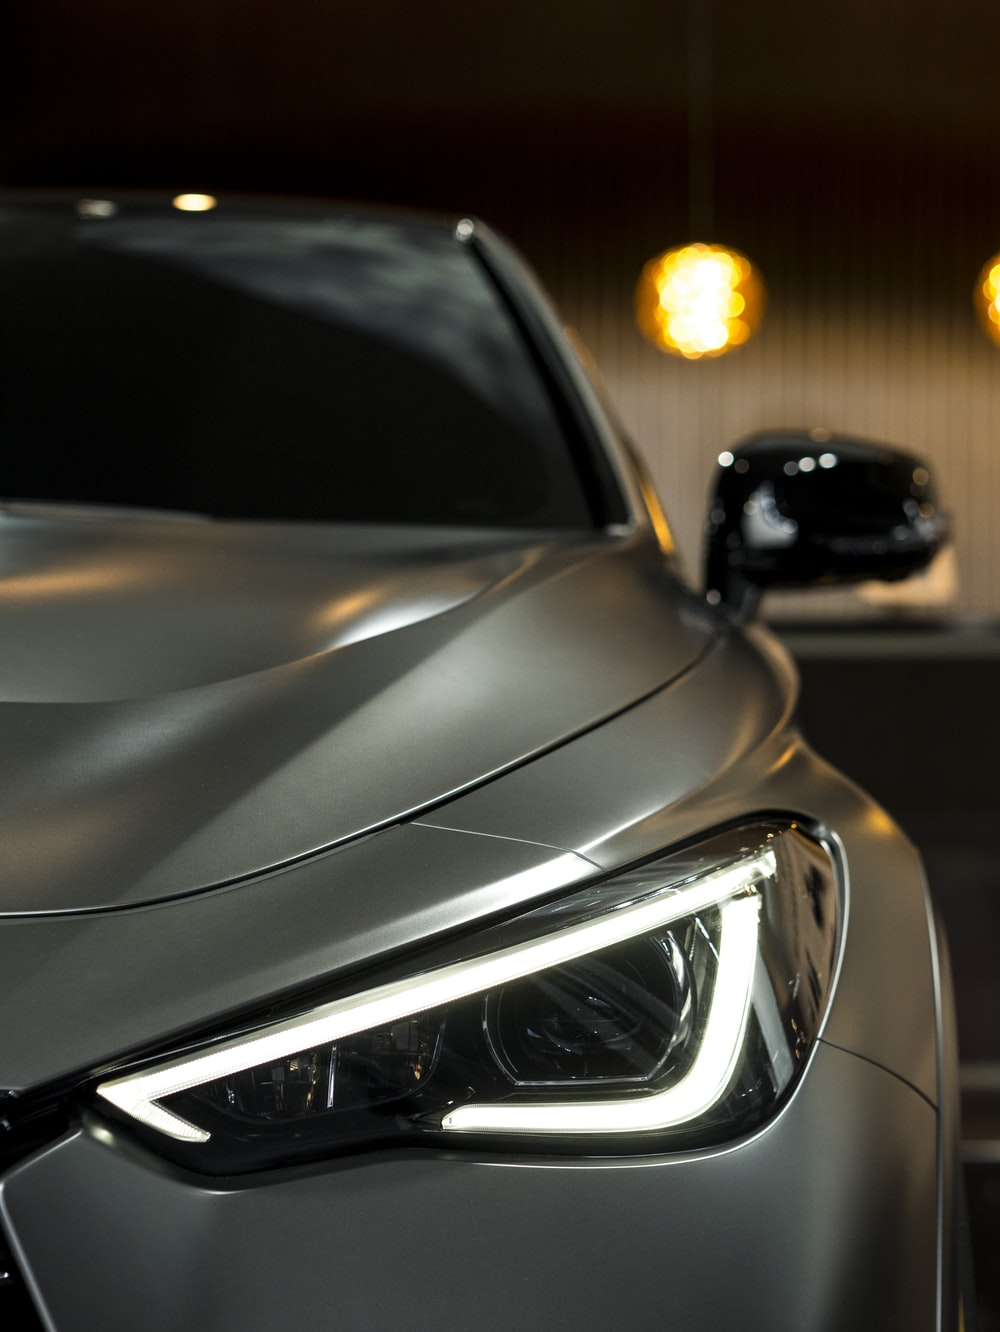 silver vehicle during nighttime